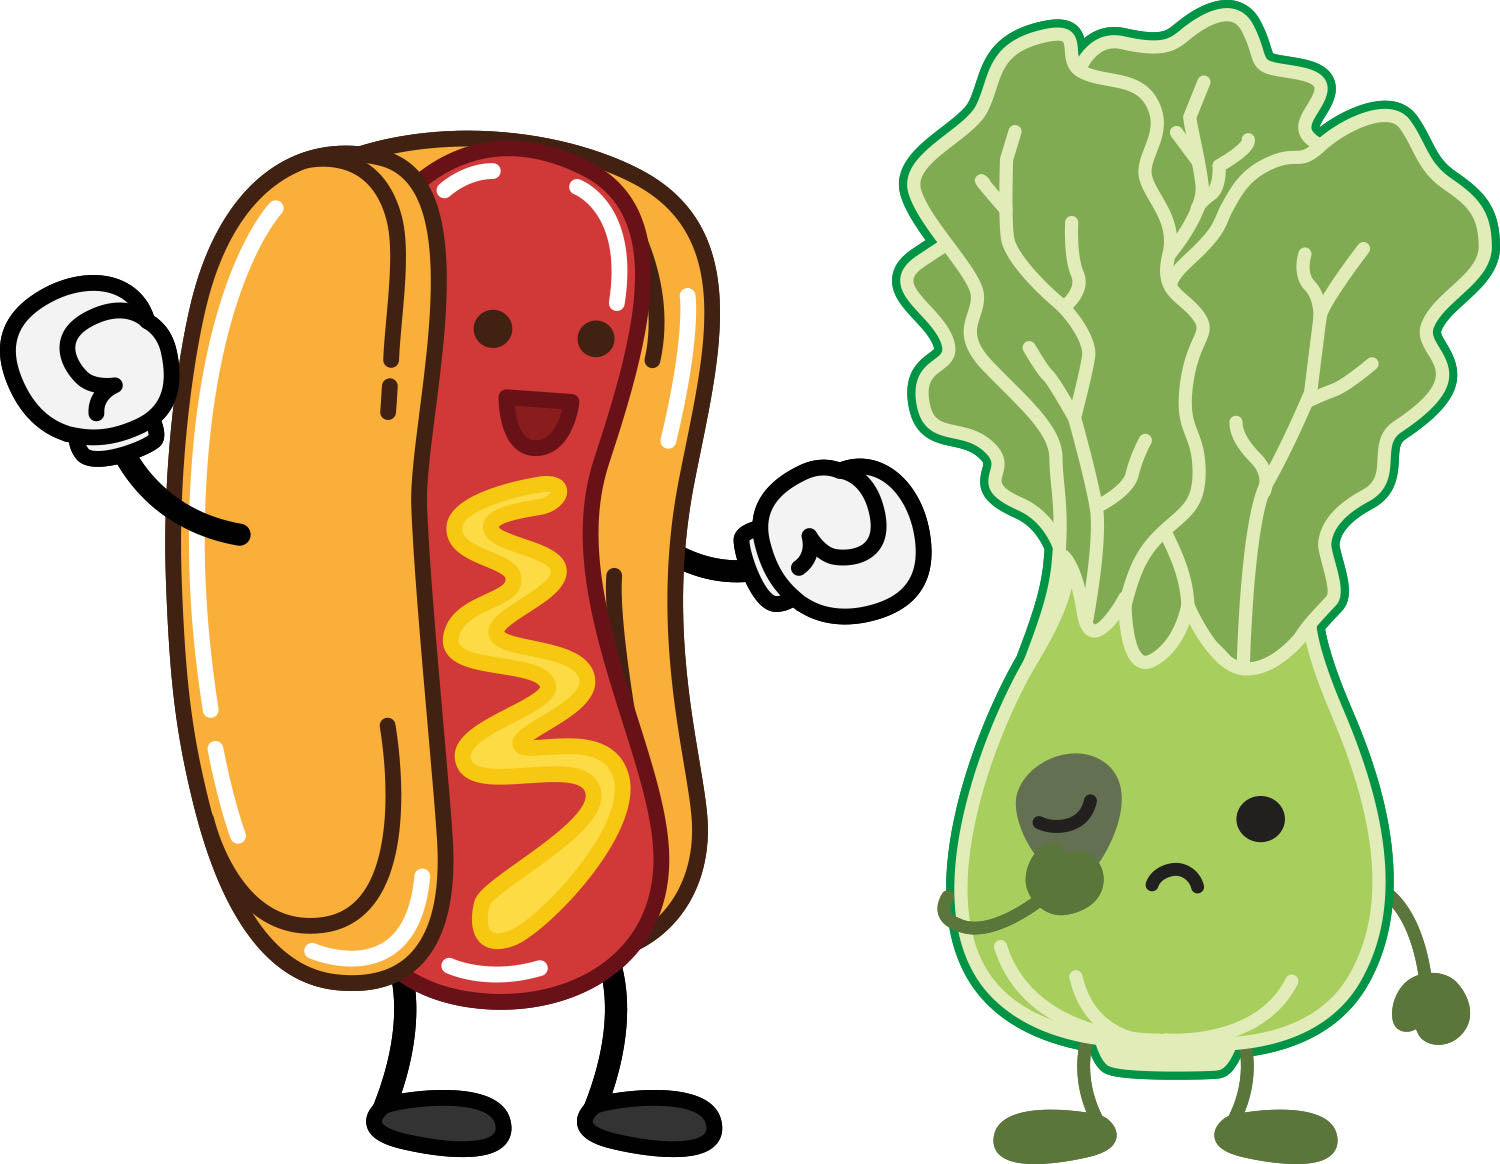 Hot Dog vs Salad White